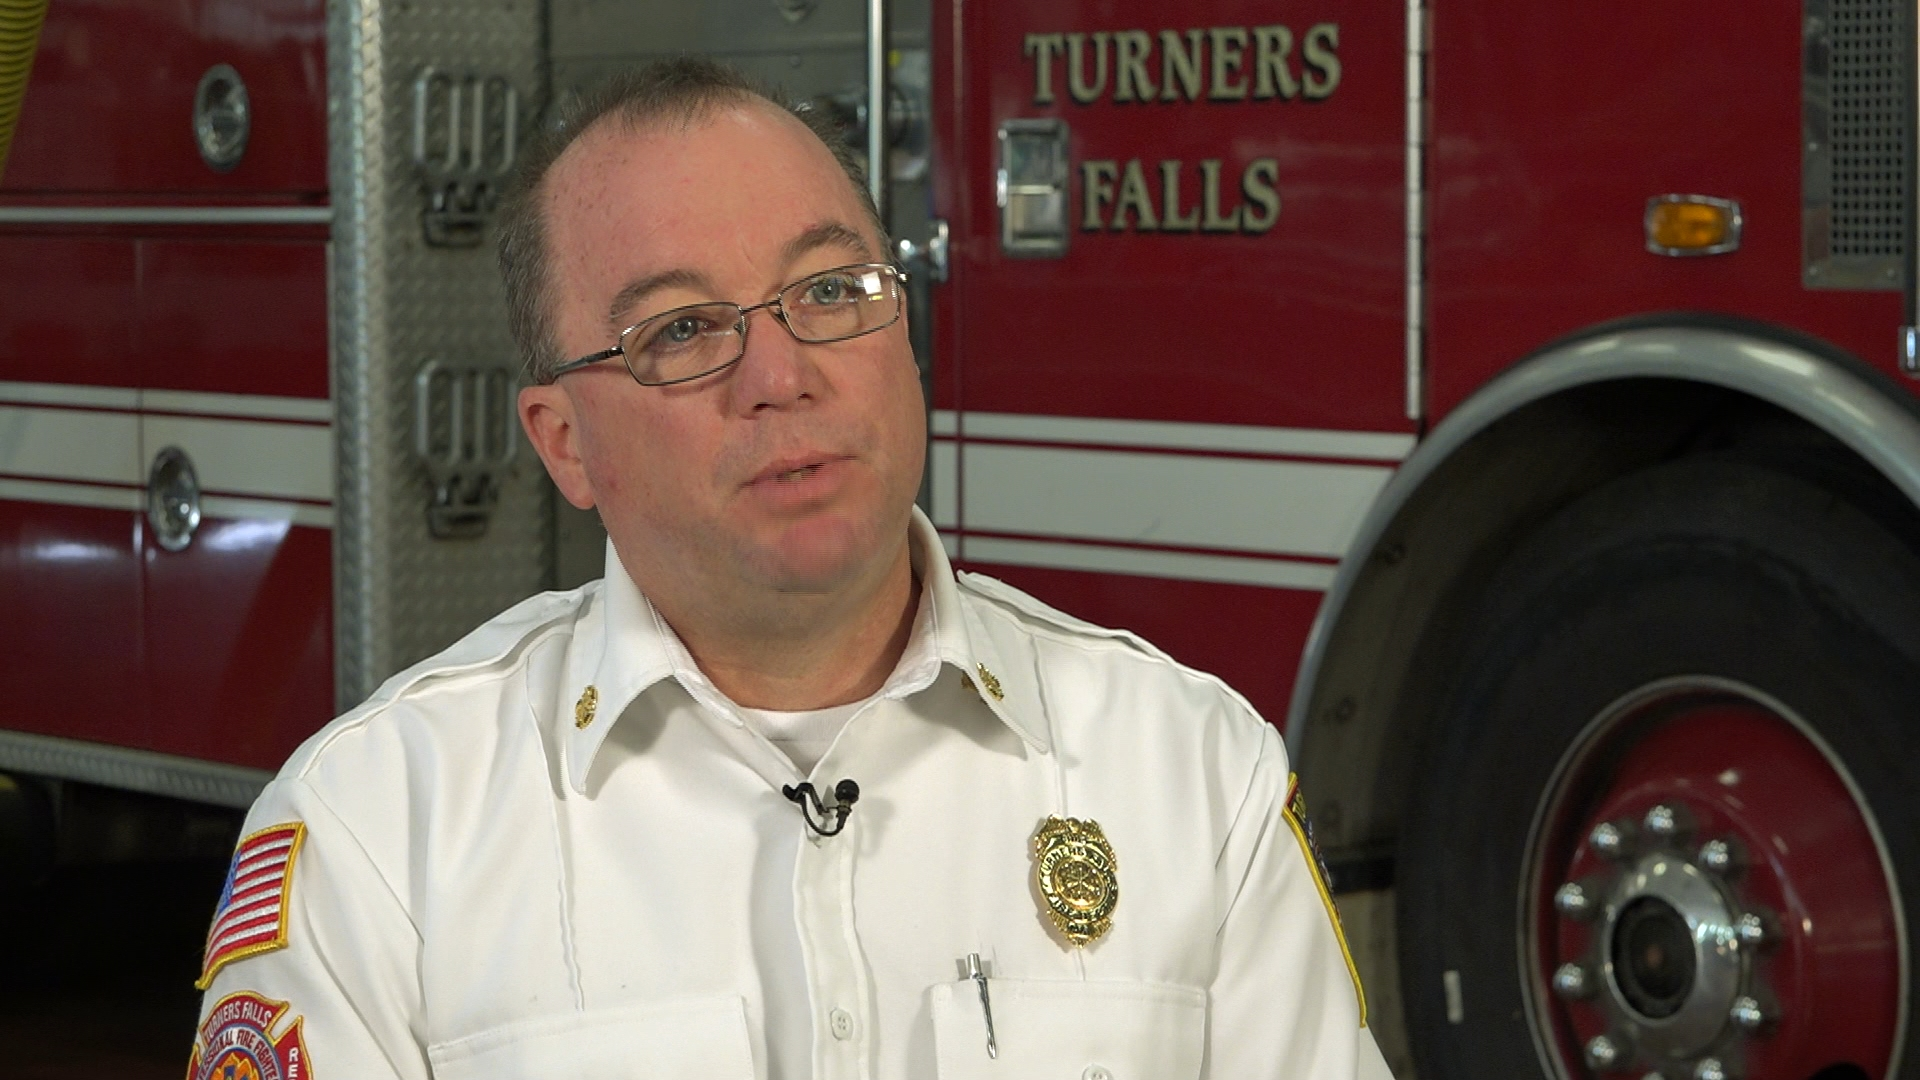 Turners Falls Fire Chief John Zellman discusses the critical need for volunteer firefighters in small towns in western Massachusetts and across the country.